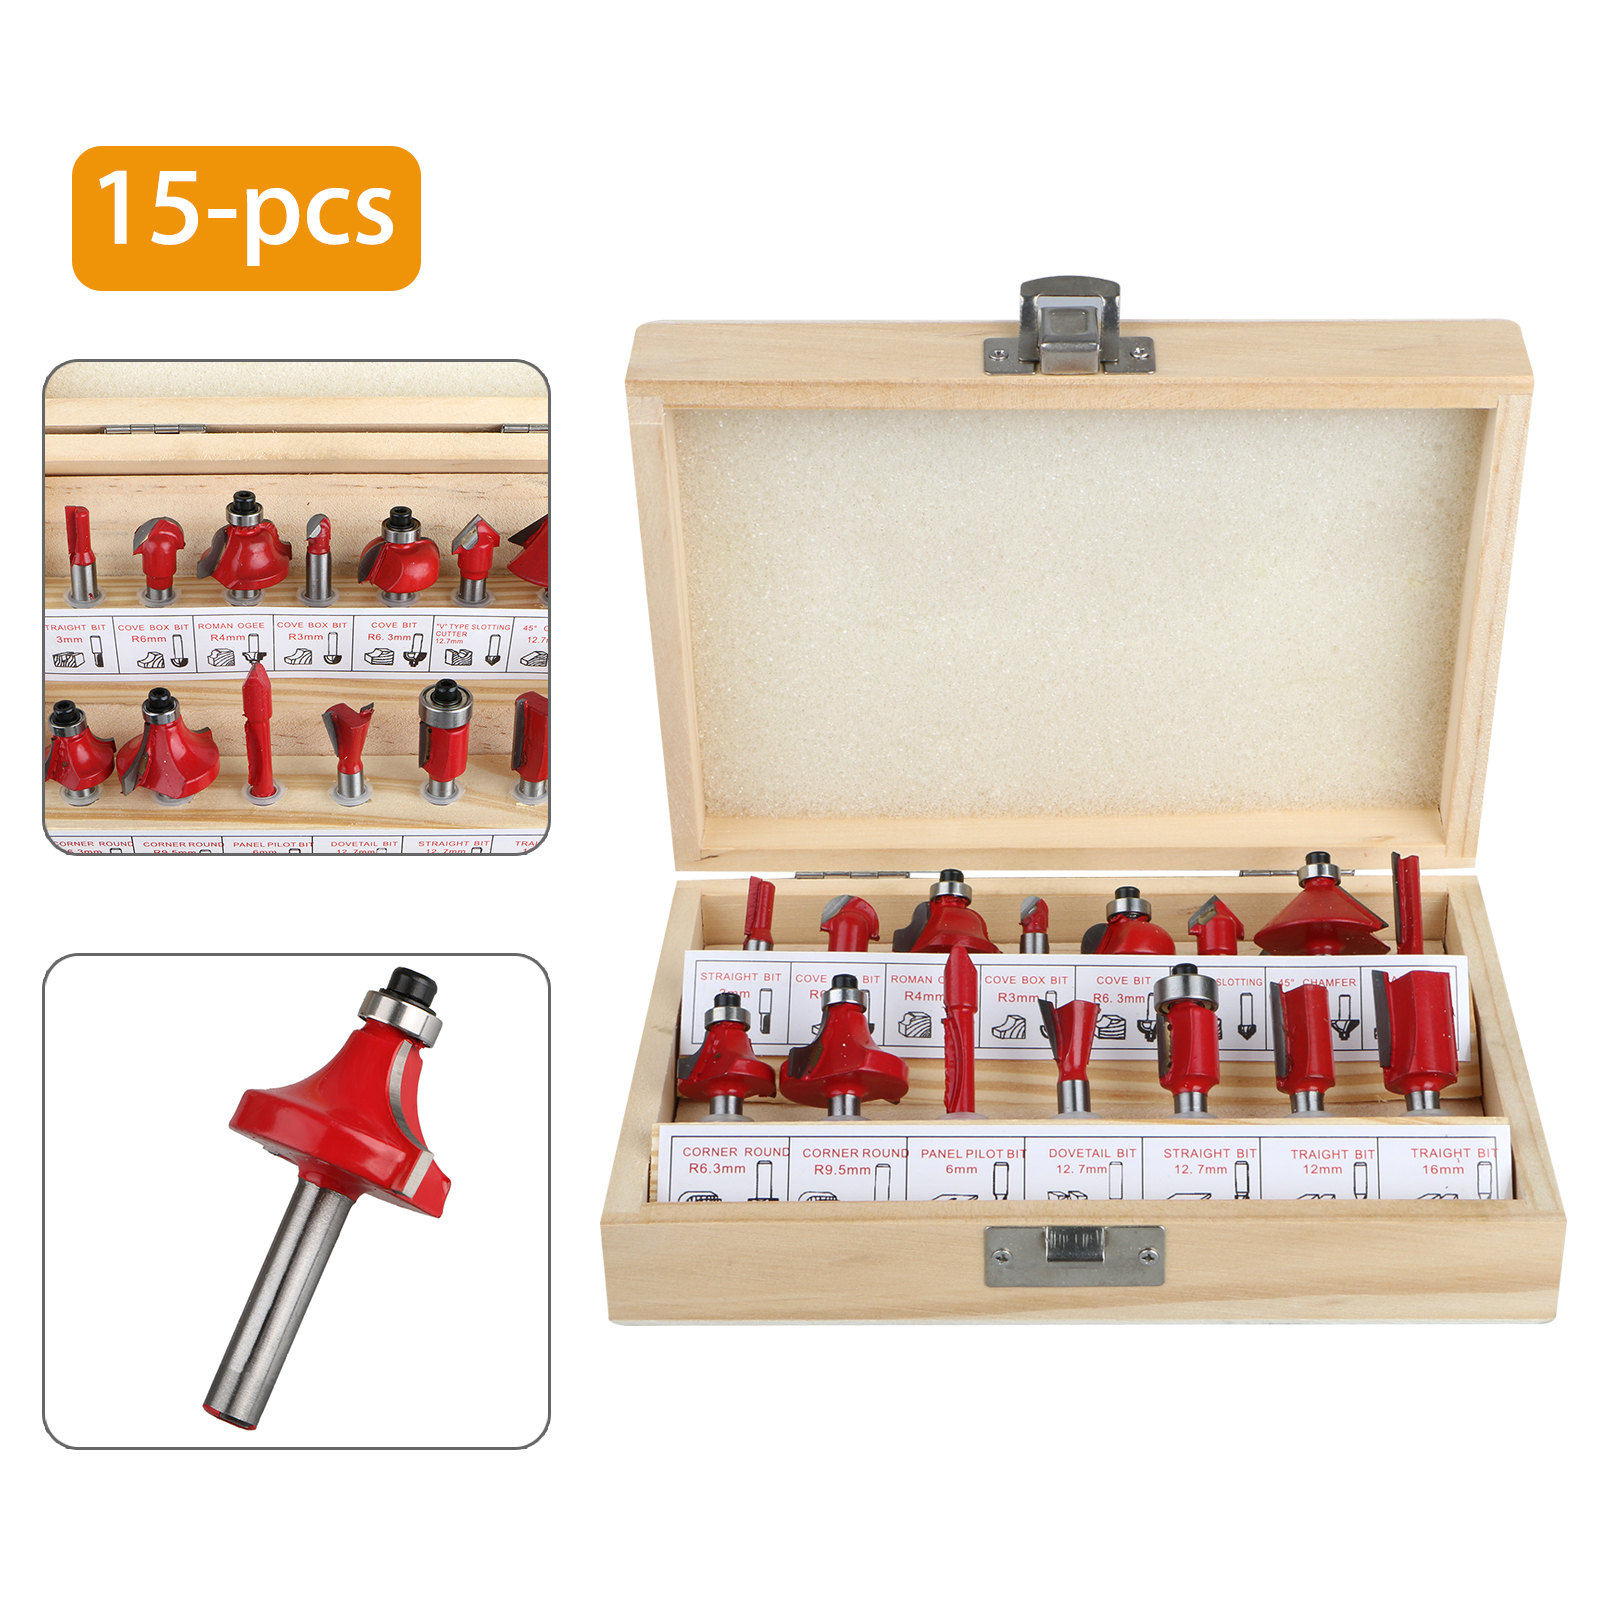 15X 8mm Shank Cemented Carbide Router Bit Set Metric Woodworking Milling Cutter